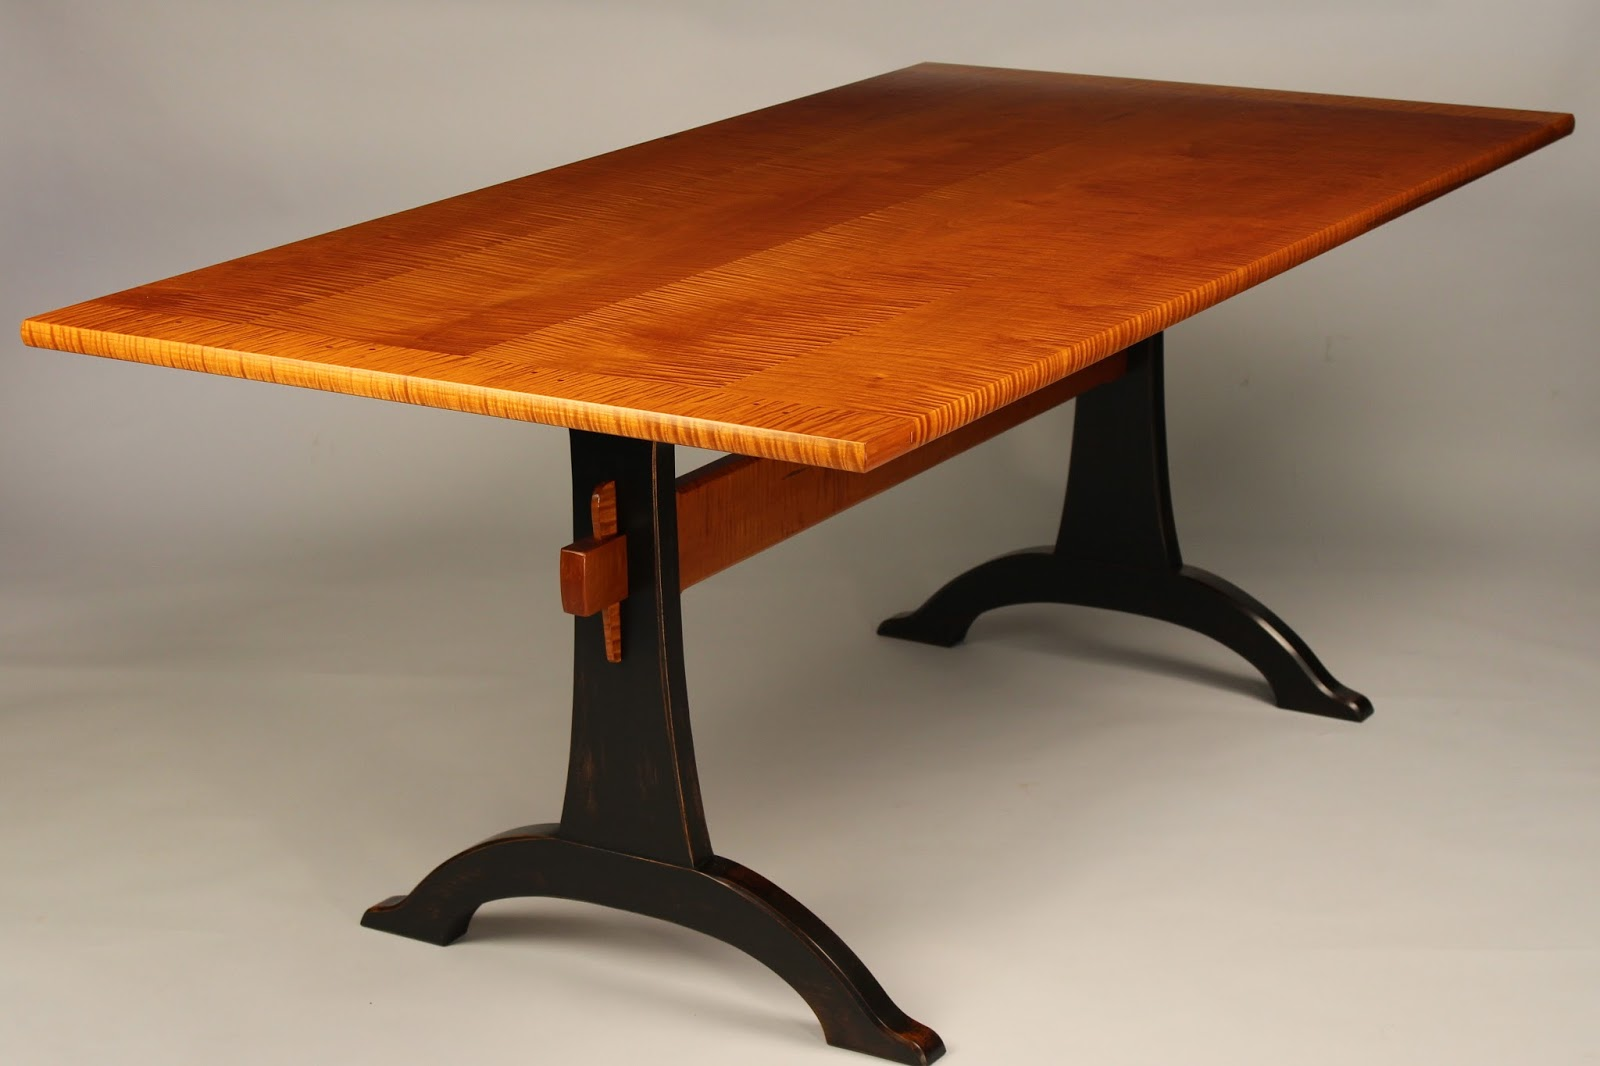 trestle table tiger maple cherry walnut mahogany curly maple